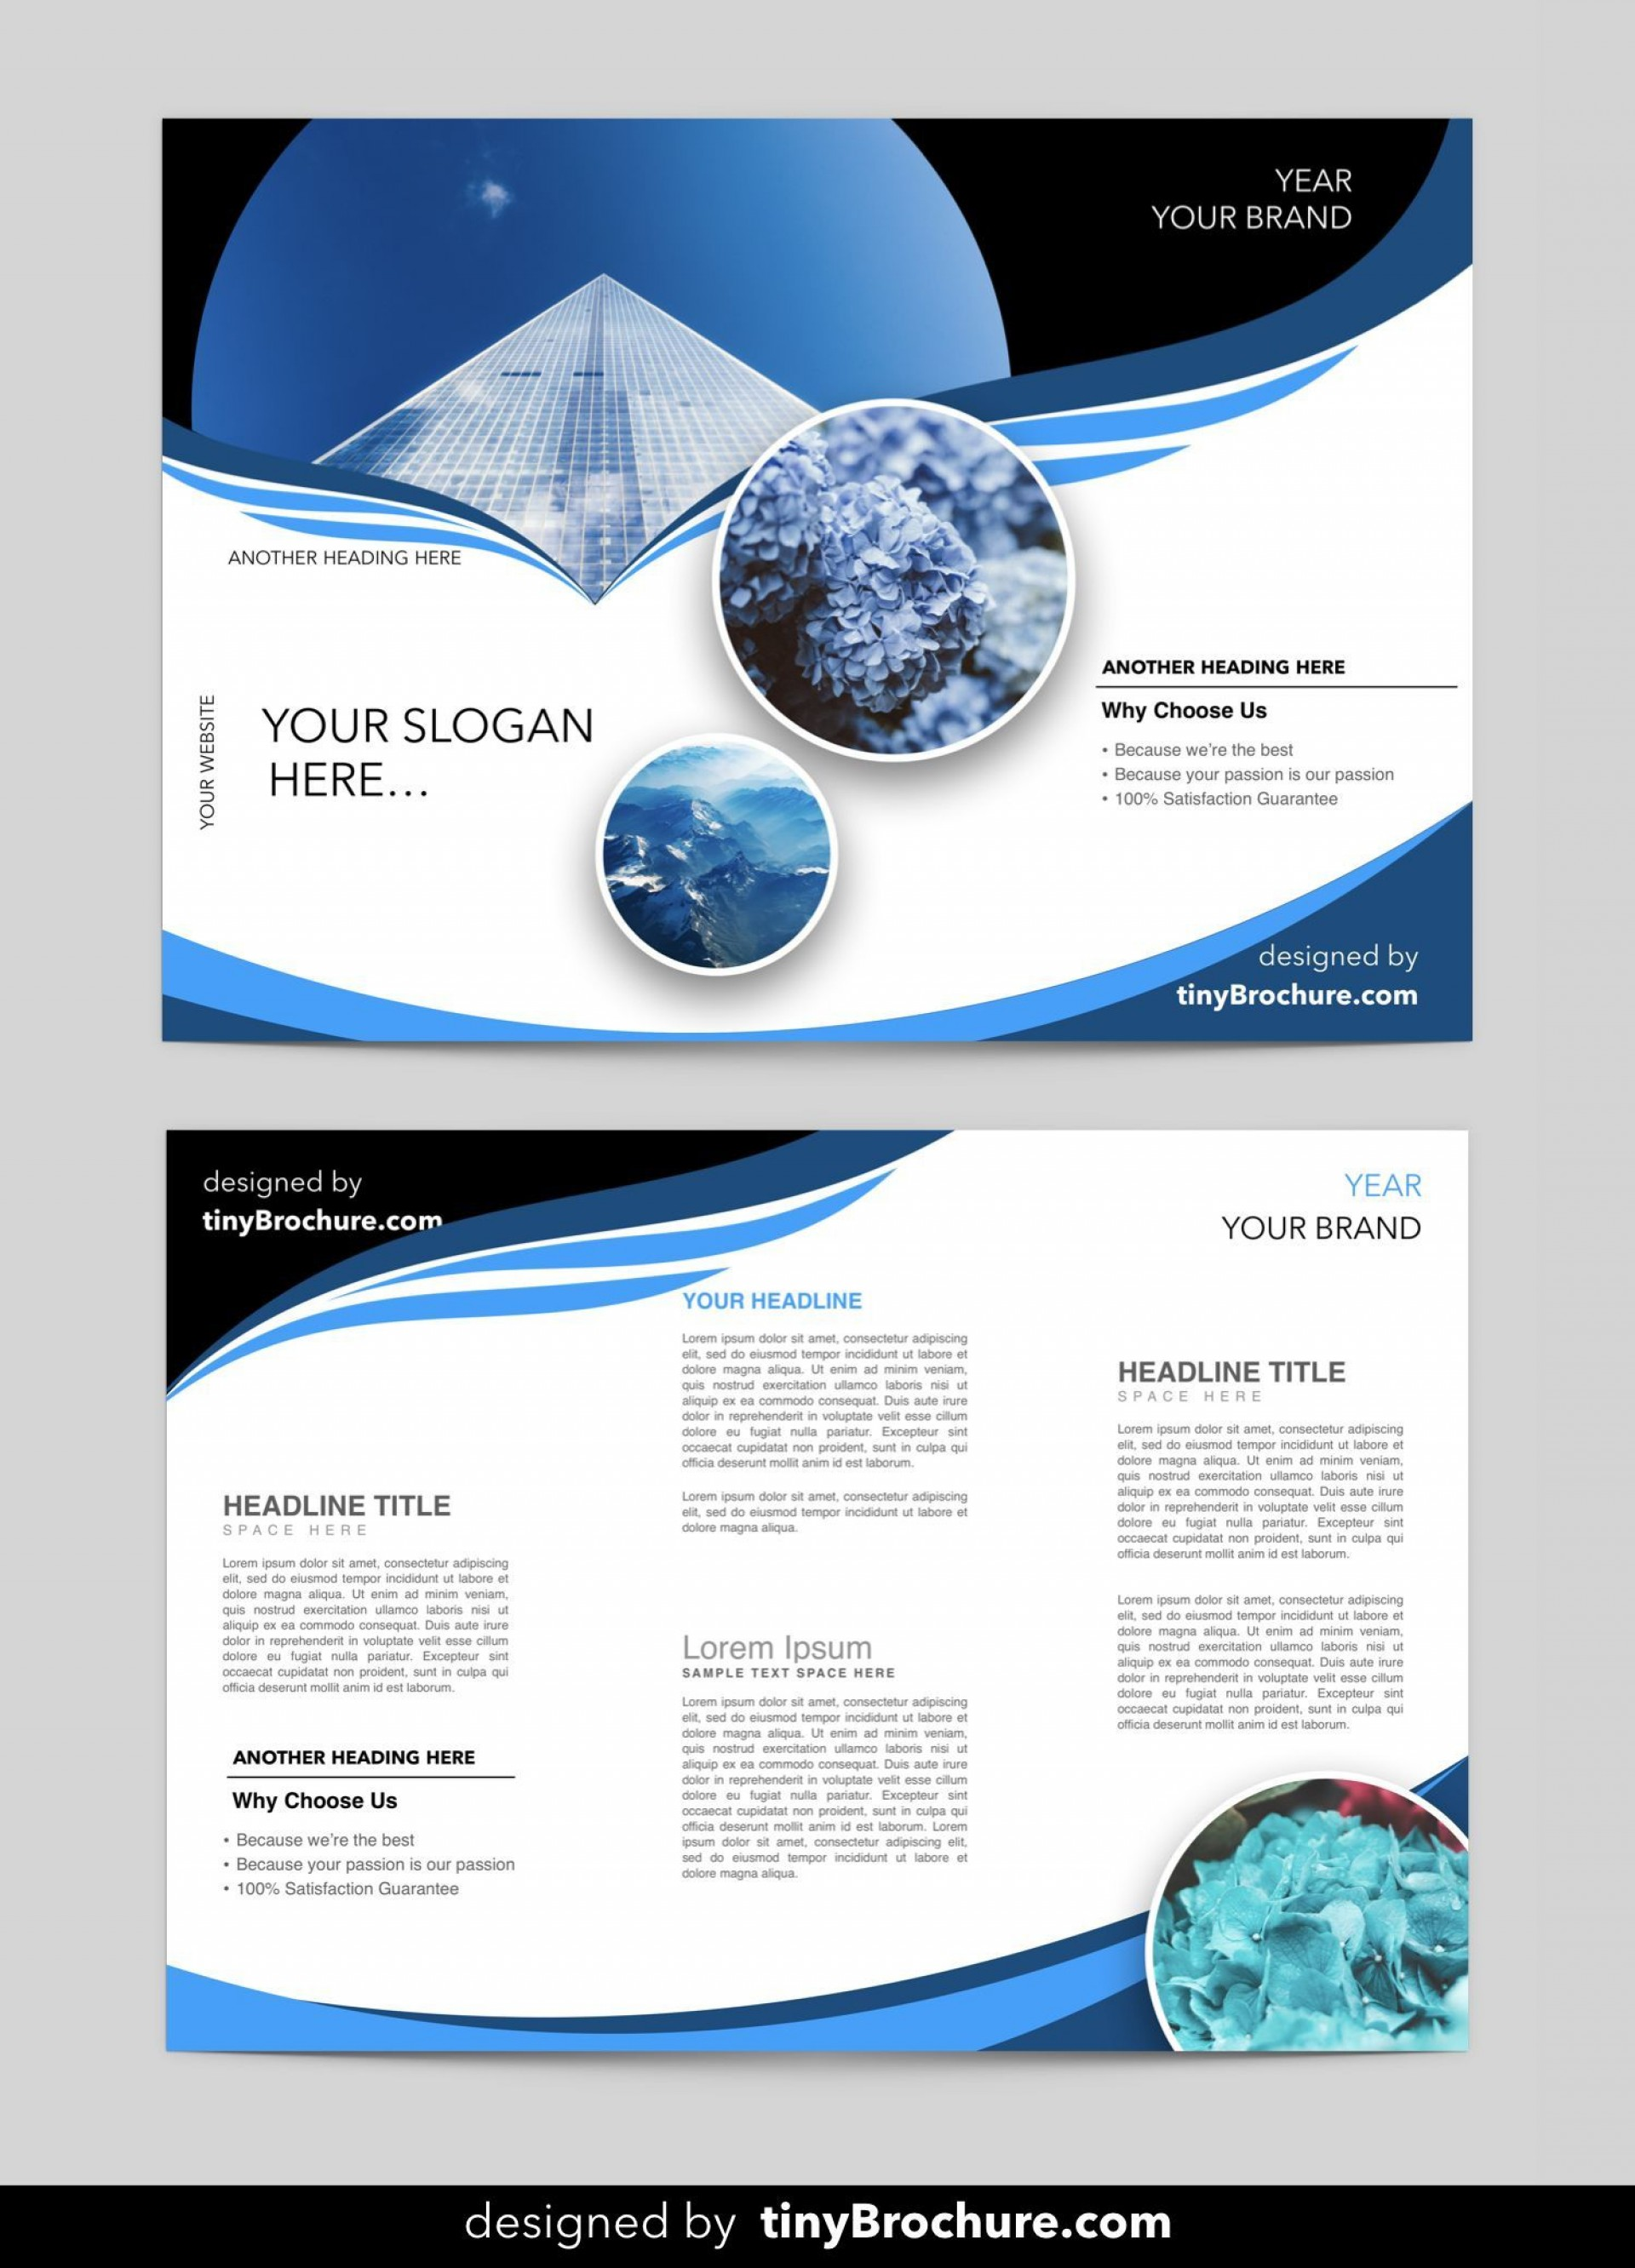 003 Wonderful Download Brochure Template For Word 2007 High Definition 1920